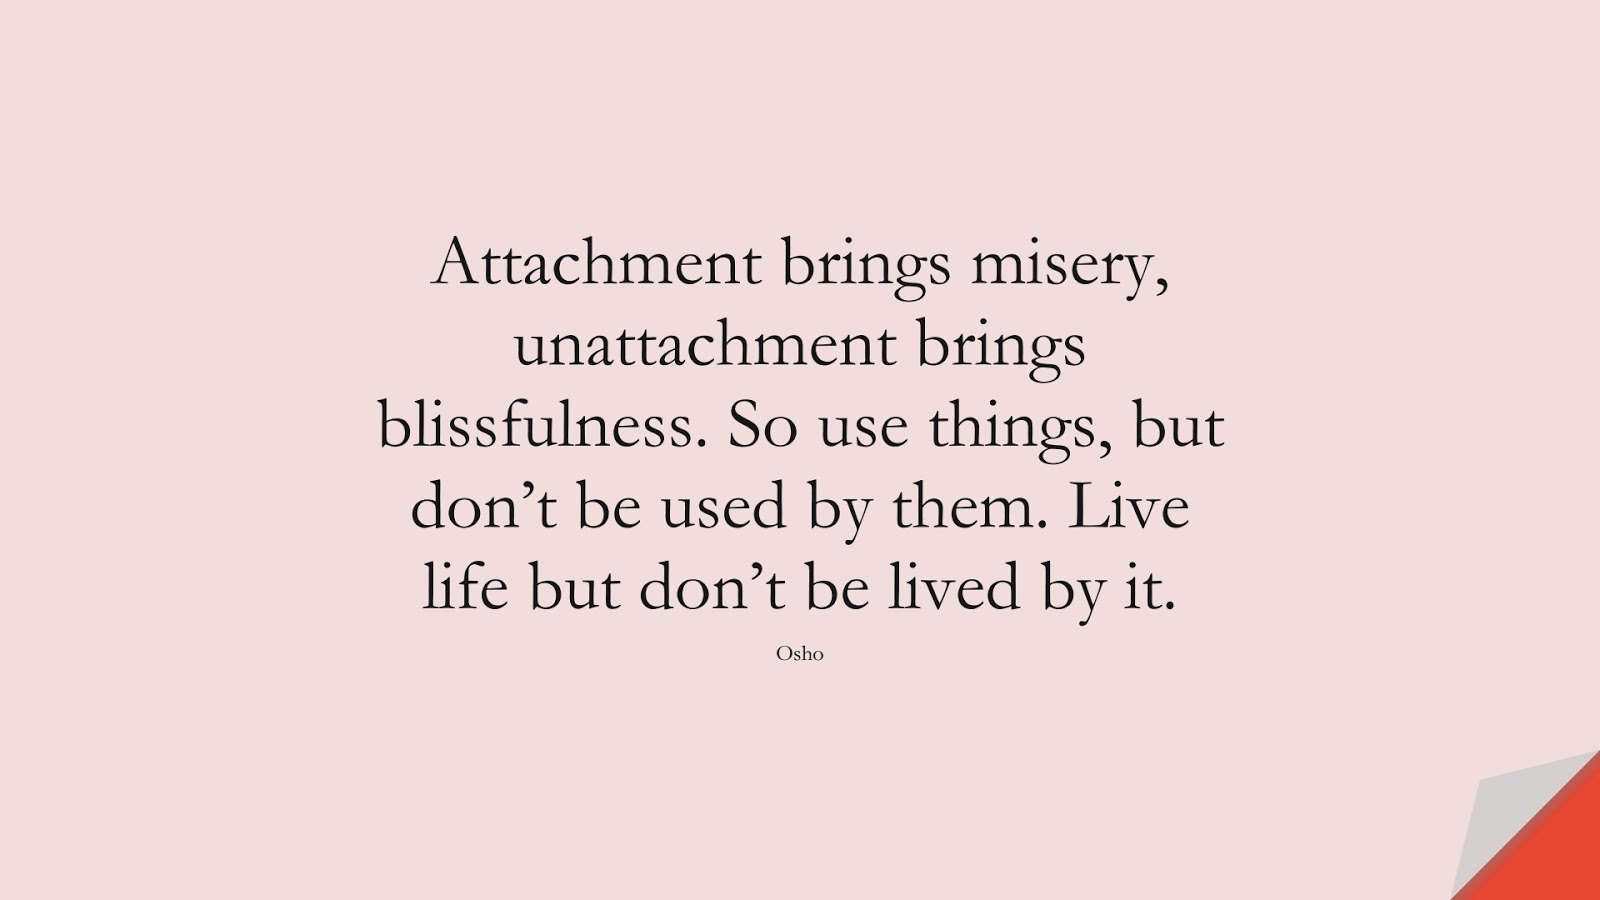 Attachment brings misery, unattachment brings blissfulness. So use things, but don't be used by them. Live life but don't be lived by it. (Osho);  #DepressionQuotes